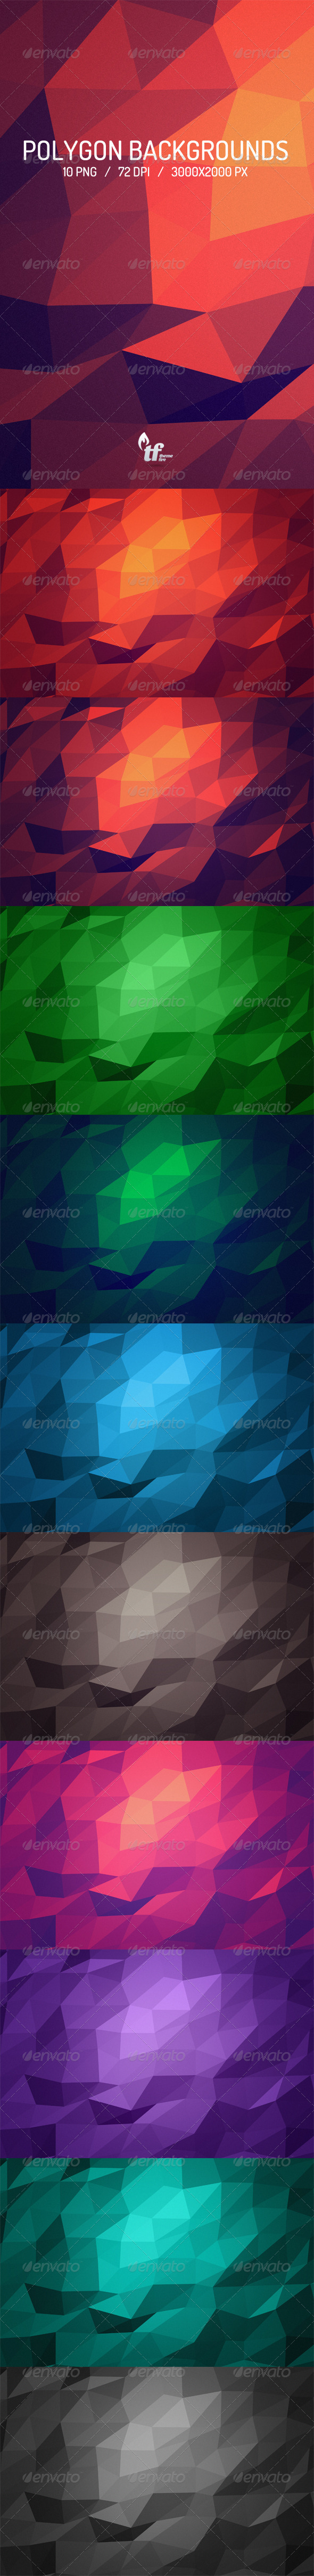 GraphicRiver Polygon Backgrounds 6922873